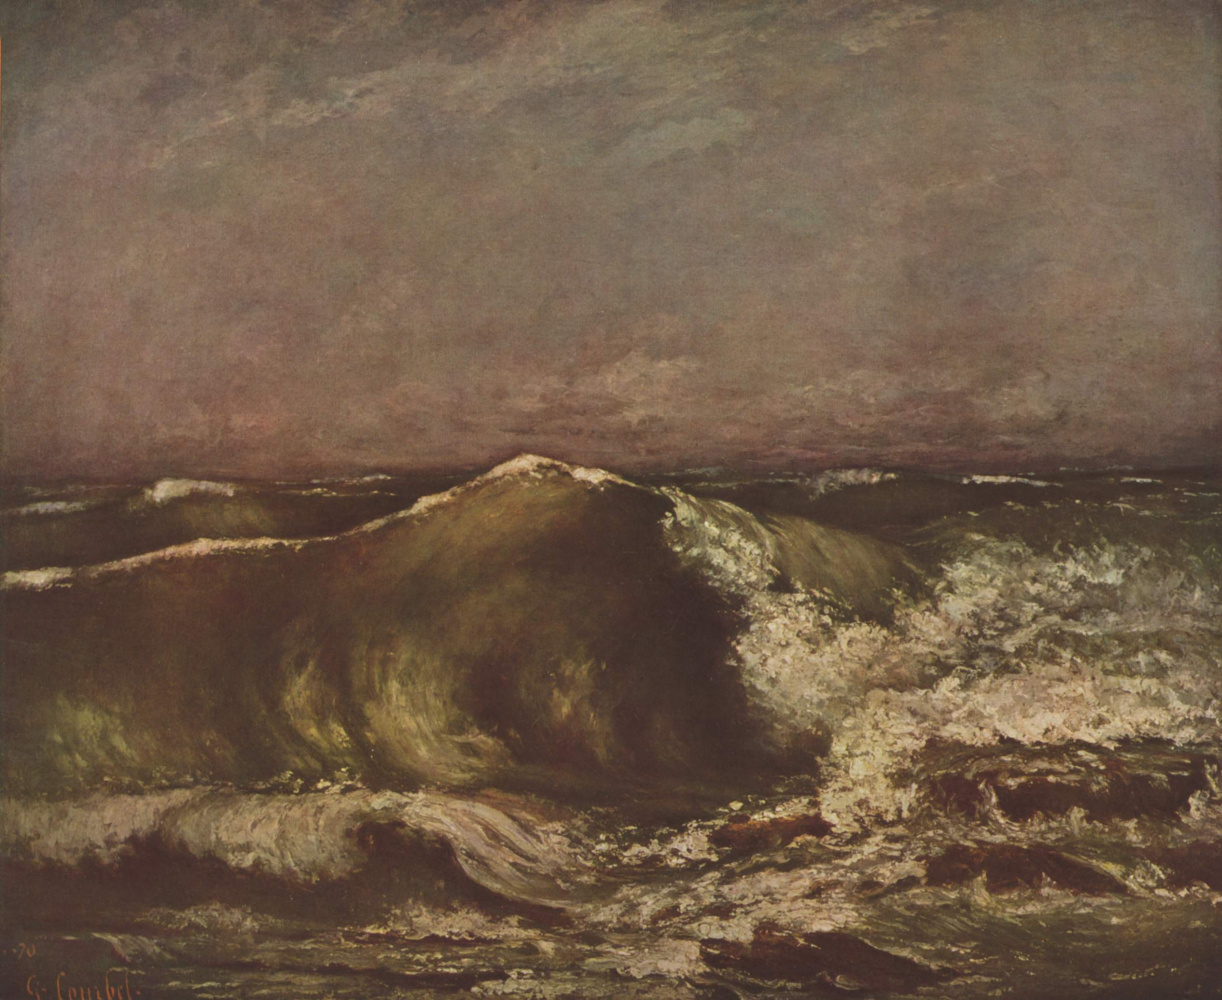 Gustave Courbet. Marine shaft